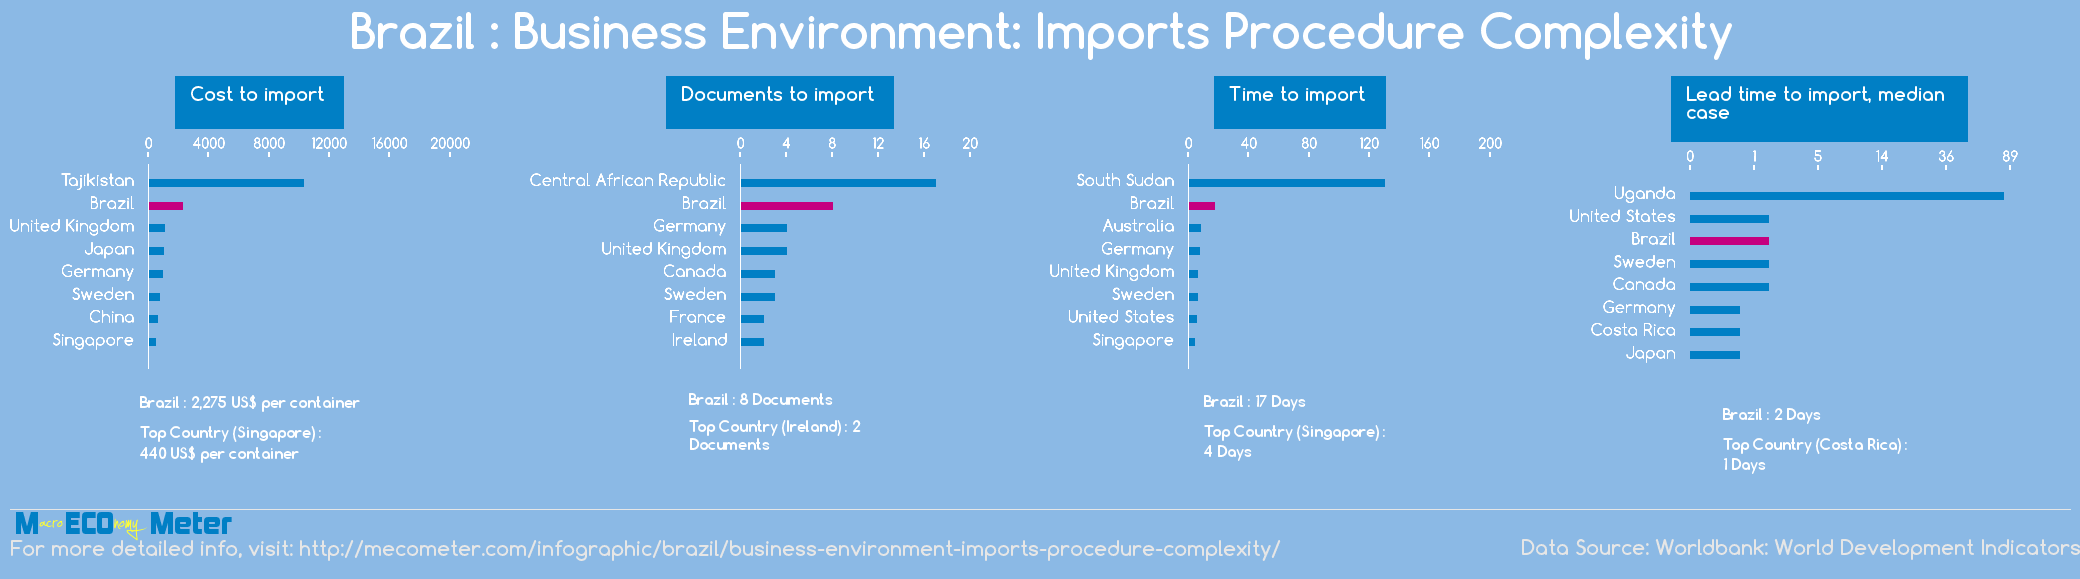 Brazil : Business Environment: Imports Procedure Complexity